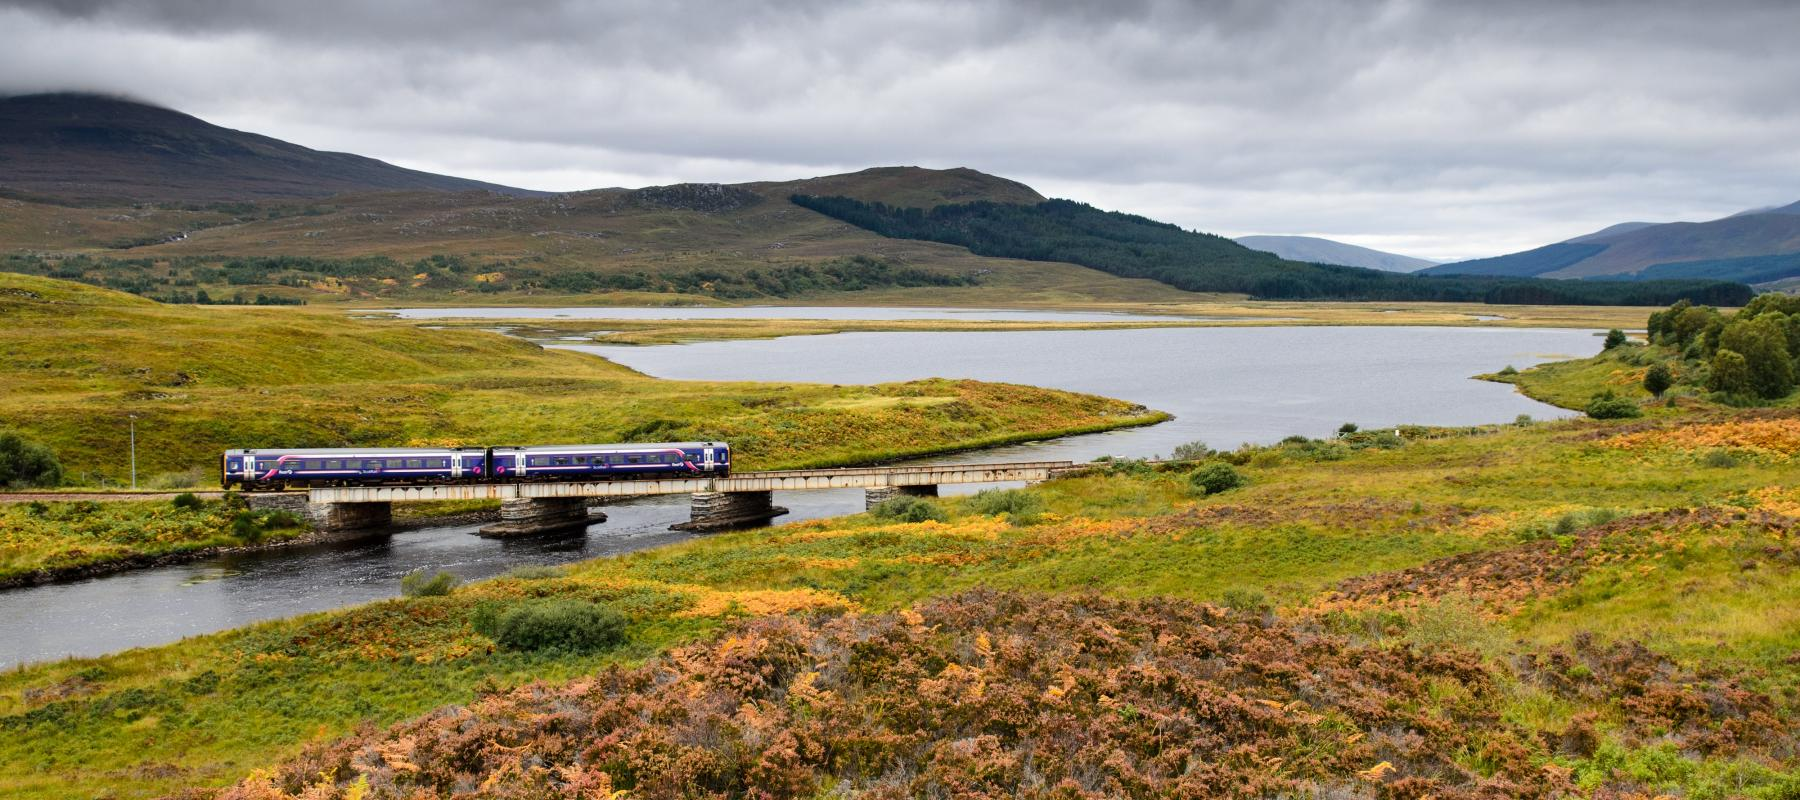 Stunning scenery along the Inverness to Kyle of Lochalsh line.